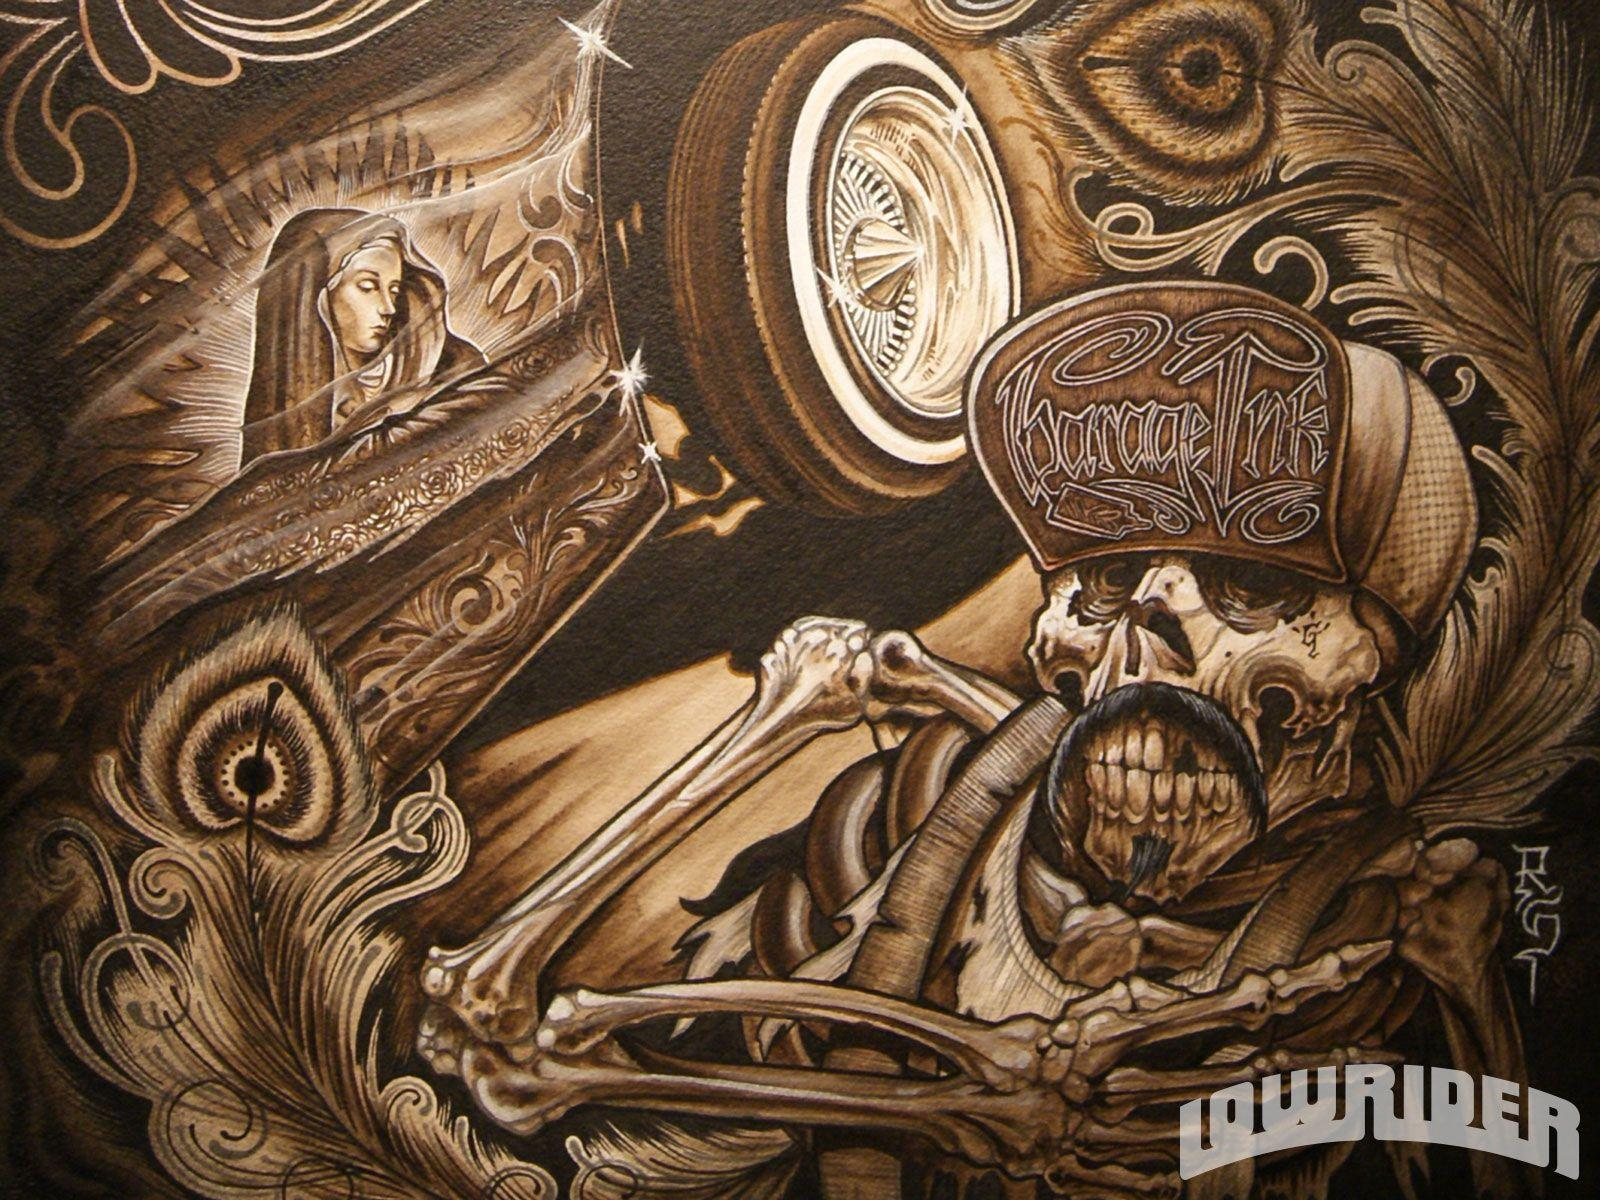 Images For Lowrider Arte Wallpaper